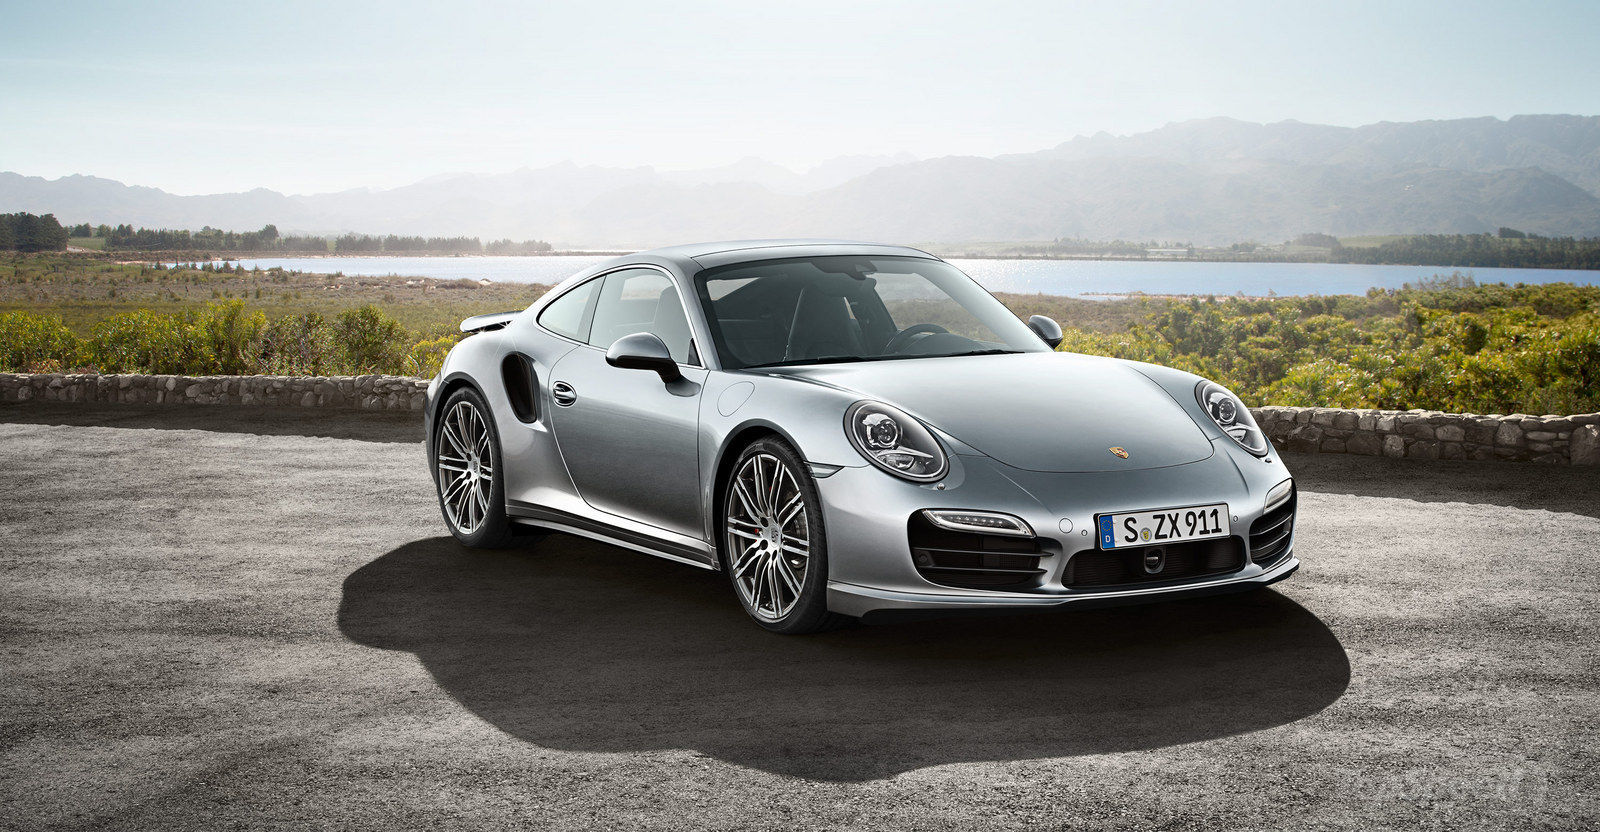 porsche plans 700 horsepower hybrid version of the 911 turbo s news top speed. Black Bedroom Furniture Sets. Home Design Ideas